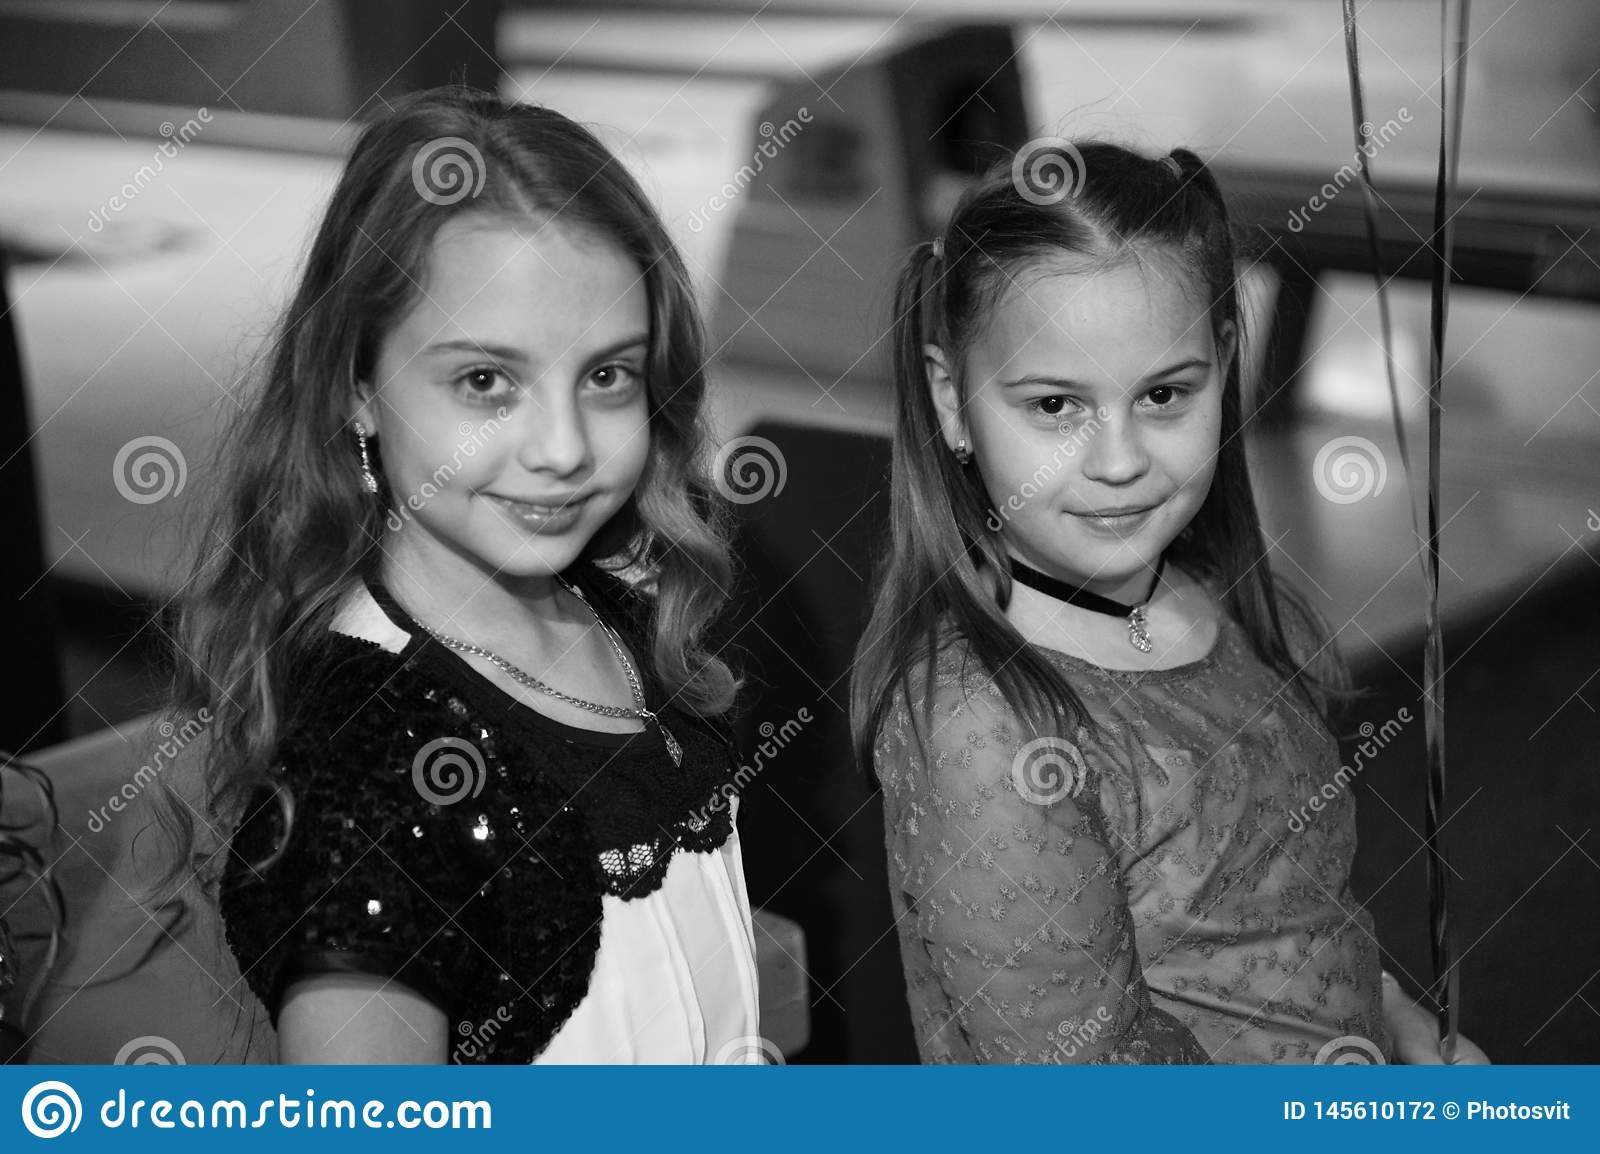 Girls best friends celebrate birthday in bowling club. Ideas how to celebrate birthday for teens. Girls cute smiling